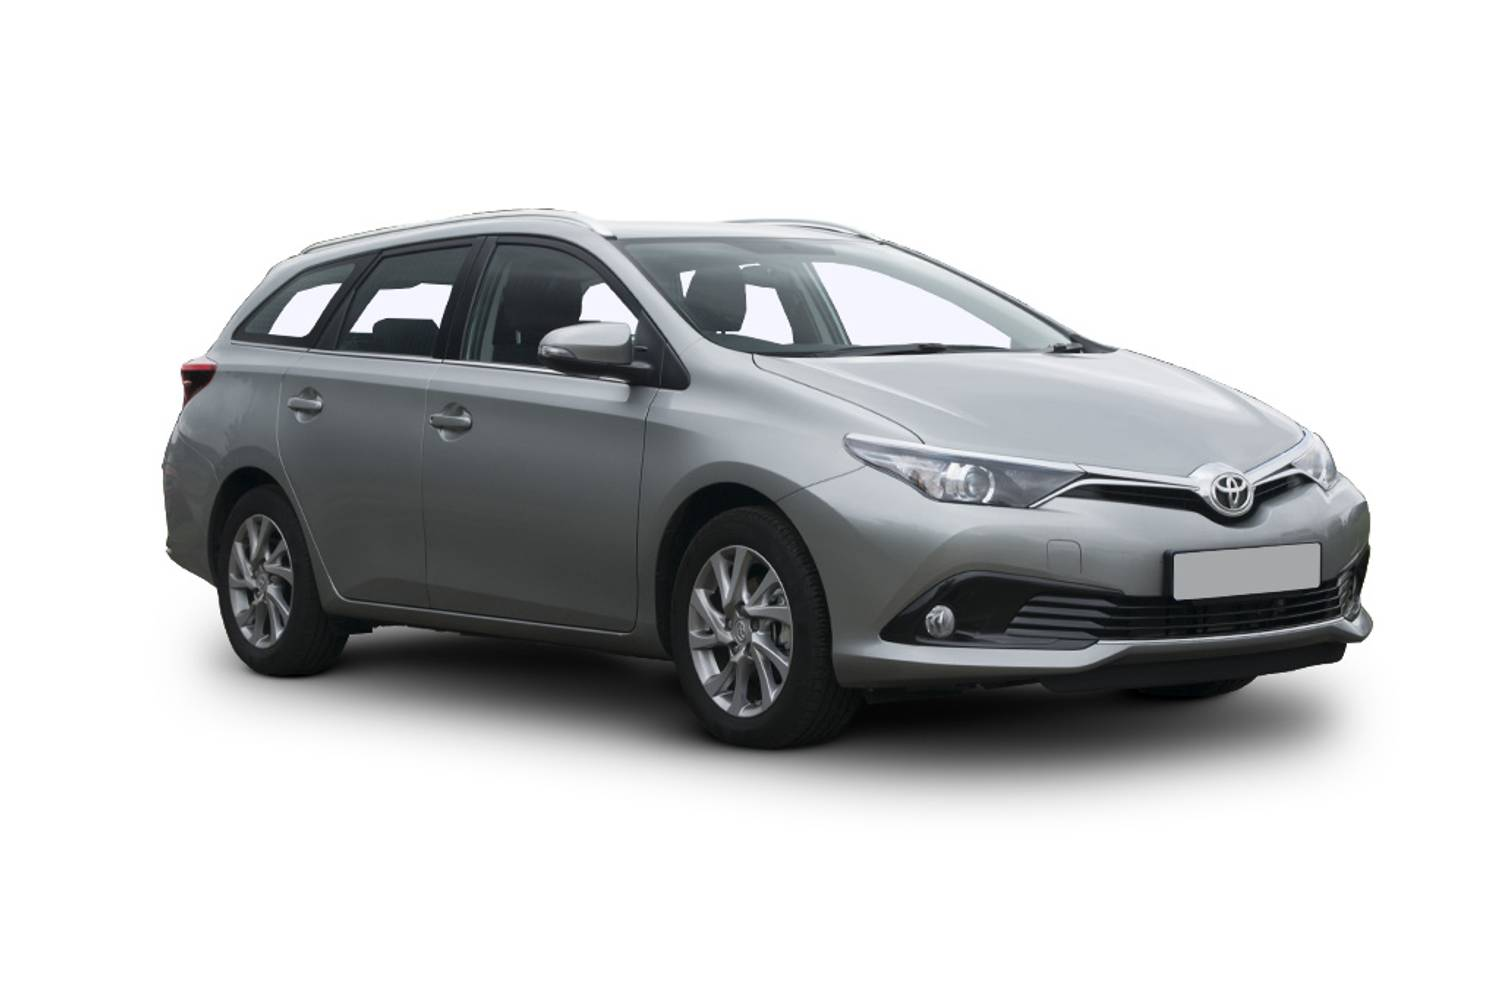 new toyota auris touring sport 1 8 hybrid excel tss 5 door cvt leather pan roof 2015 for sale. Black Bedroom Furniture Sets. Home Design Ideas